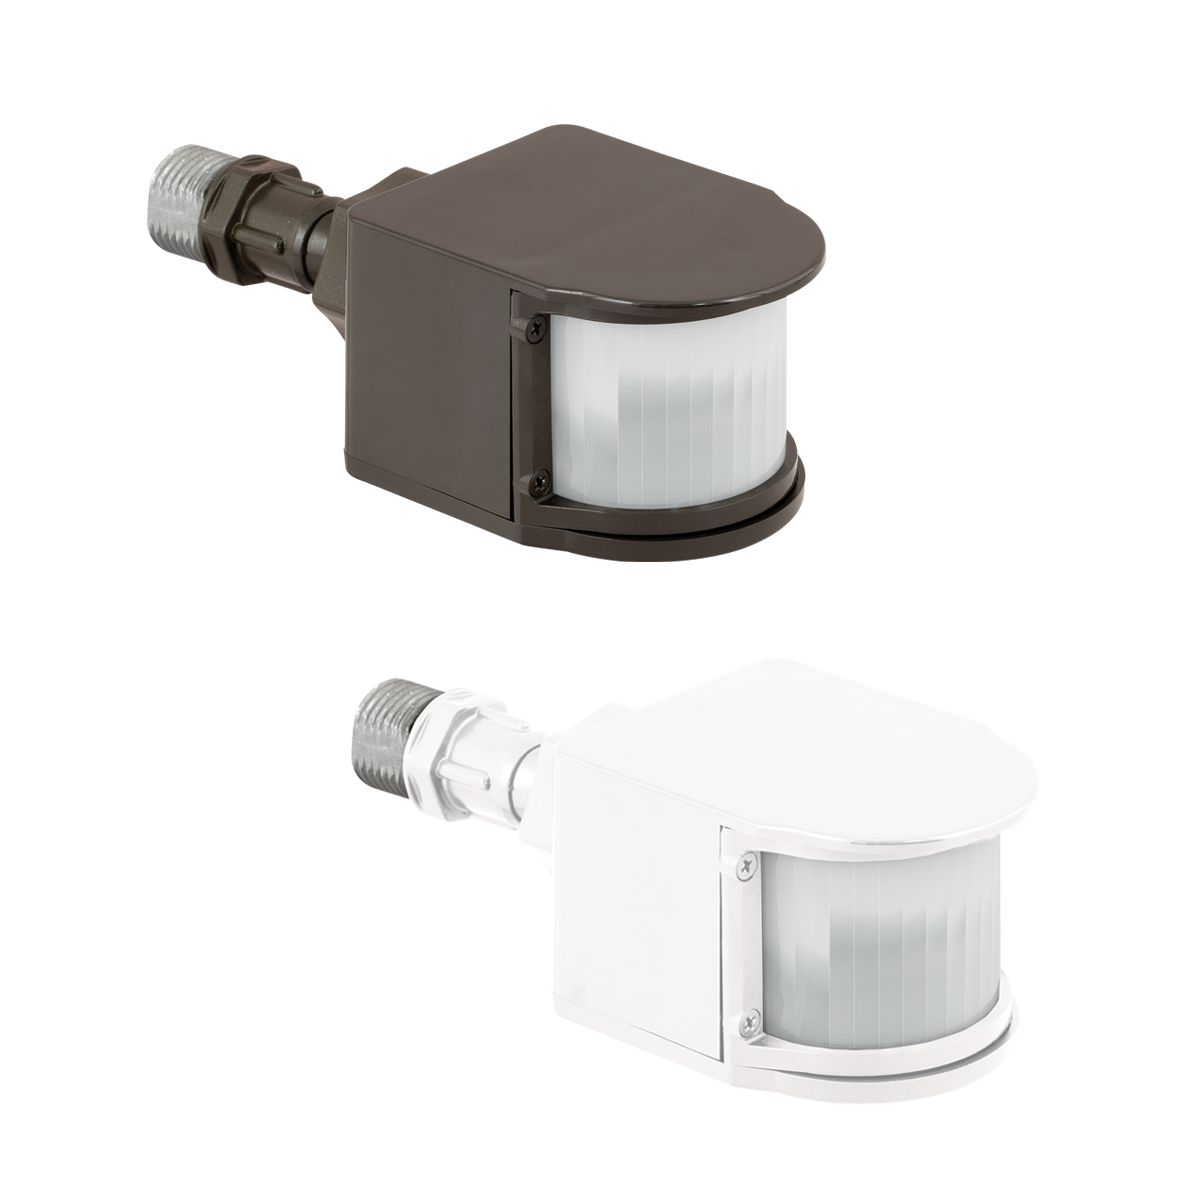 Occupancy sensor, Dark Bronze color